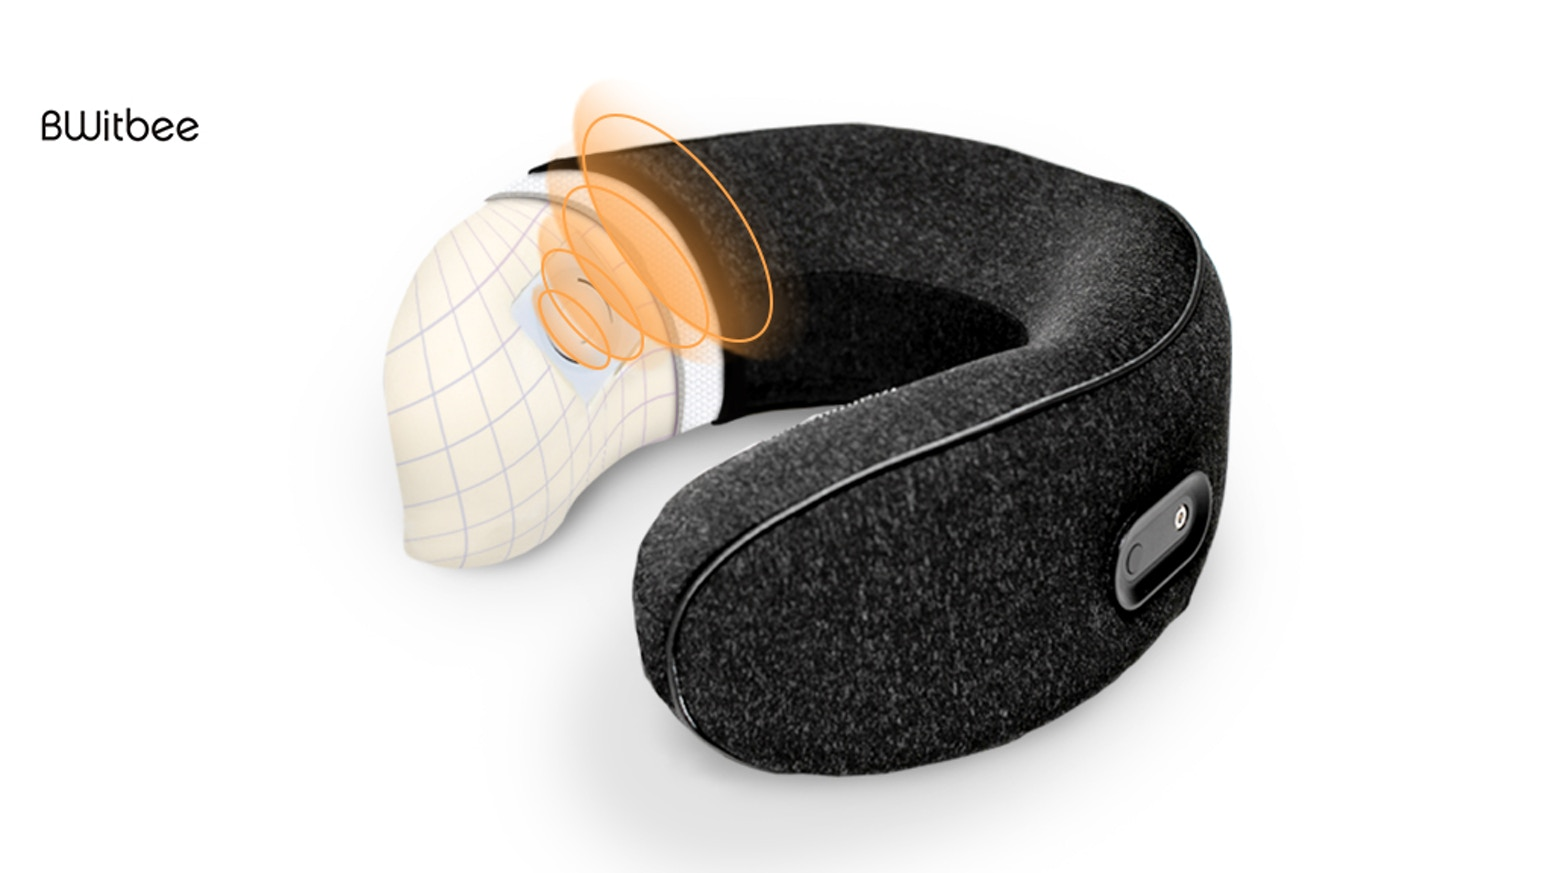 Bluetooth 5.0 Stereo|Magneto-suction Charging|Memory cotton|directional sound transmission|12H play time